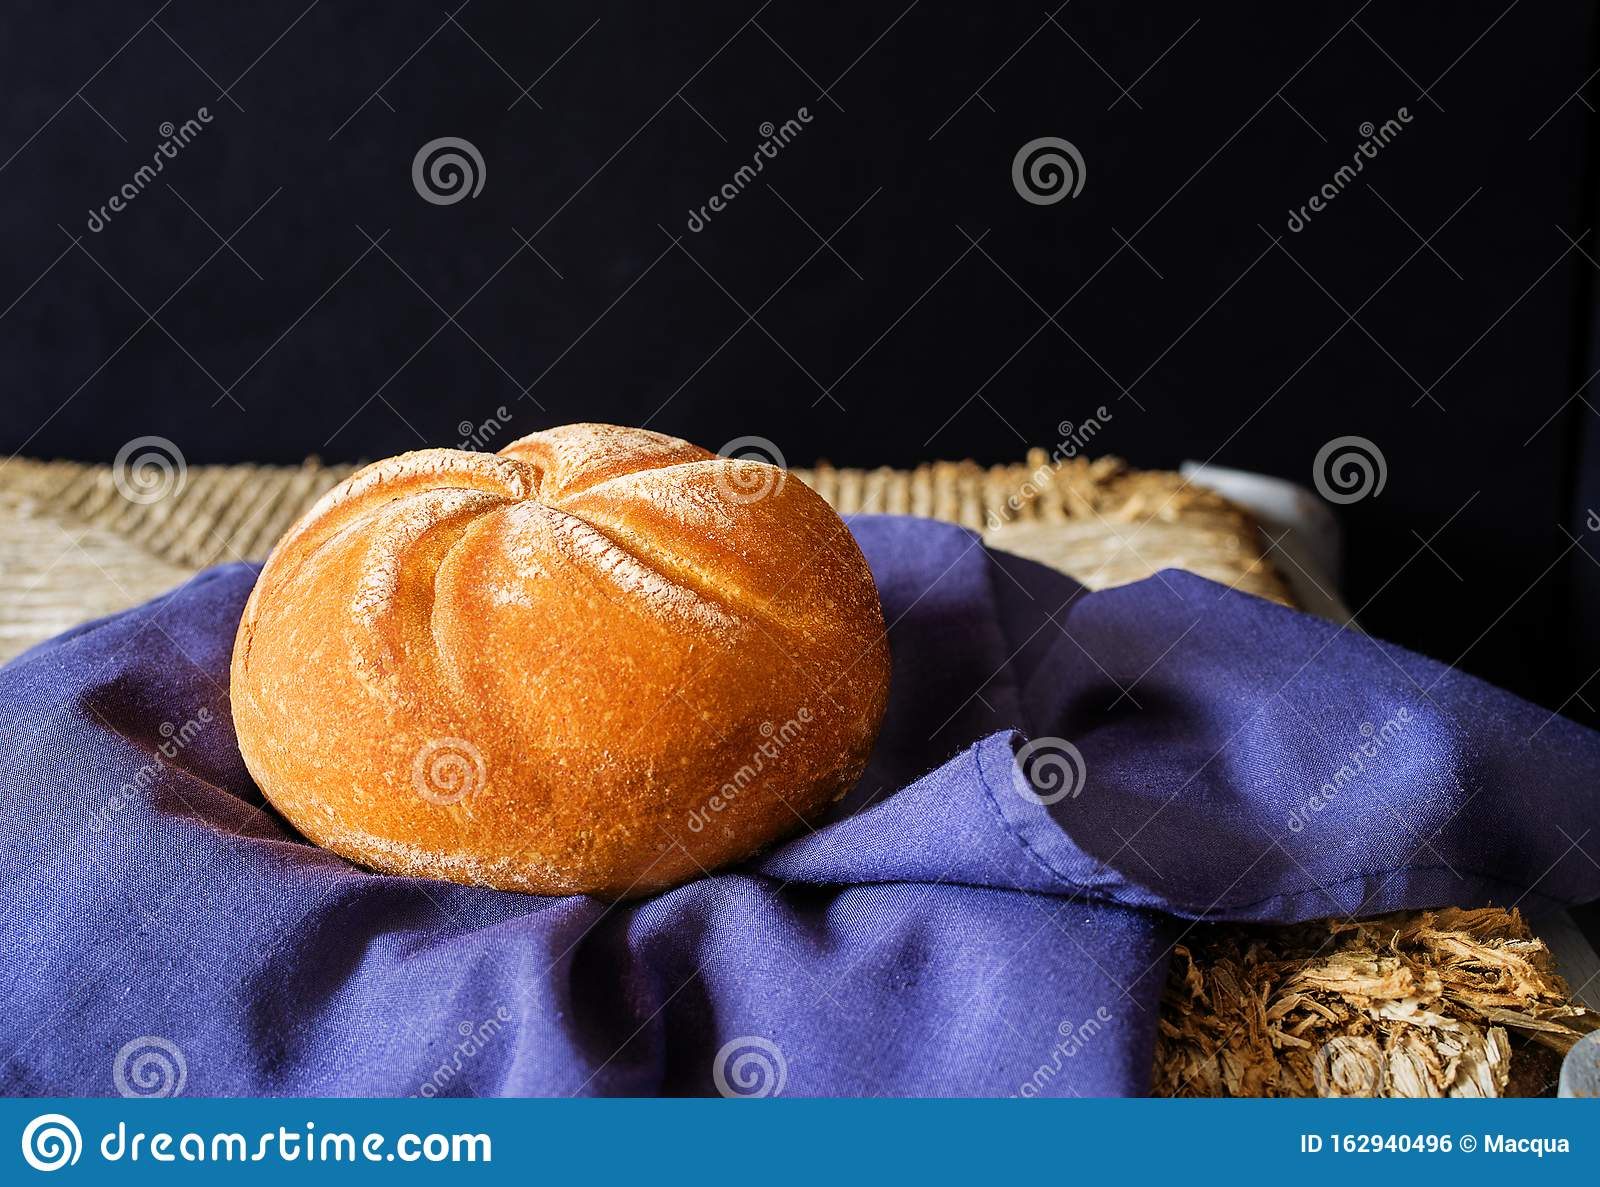 Fresh loaf on rustic stand holded in a blue napkin